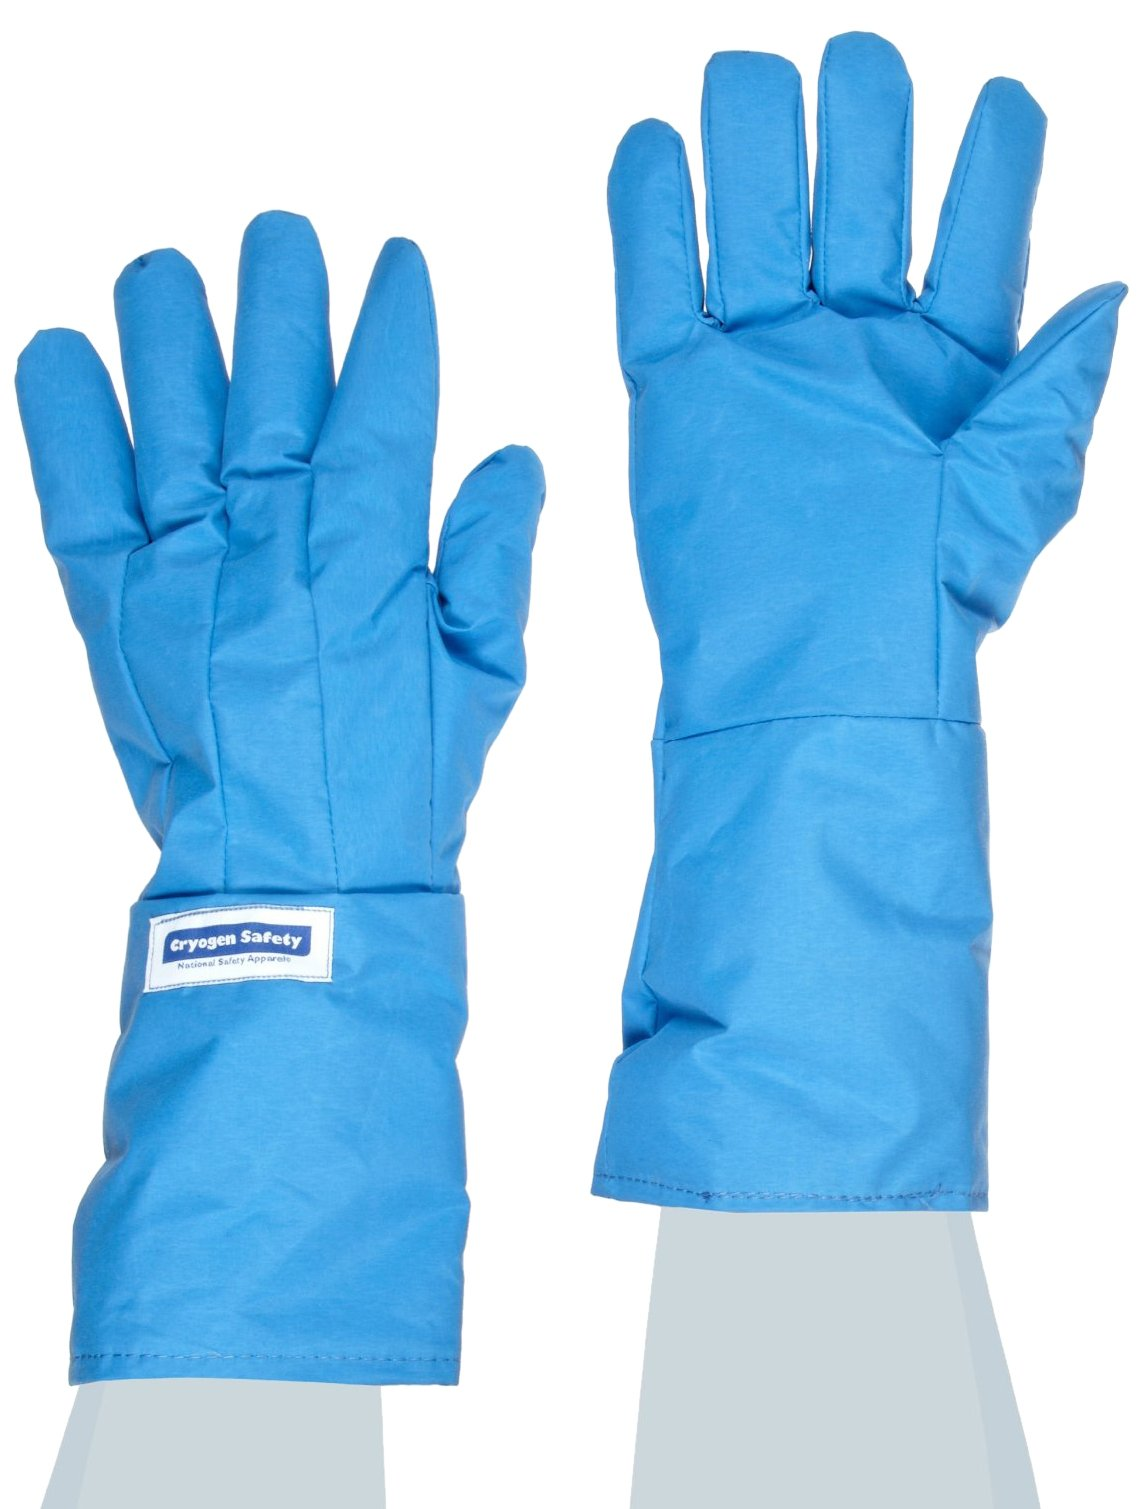 National Safety Apparel G99CRBERMDMA Nylon Taslan and PTFE Mid-Arm Standard Water Resistant Safety Glove, Cryogenic, 14'' - 15'' Length, Medium, Blue